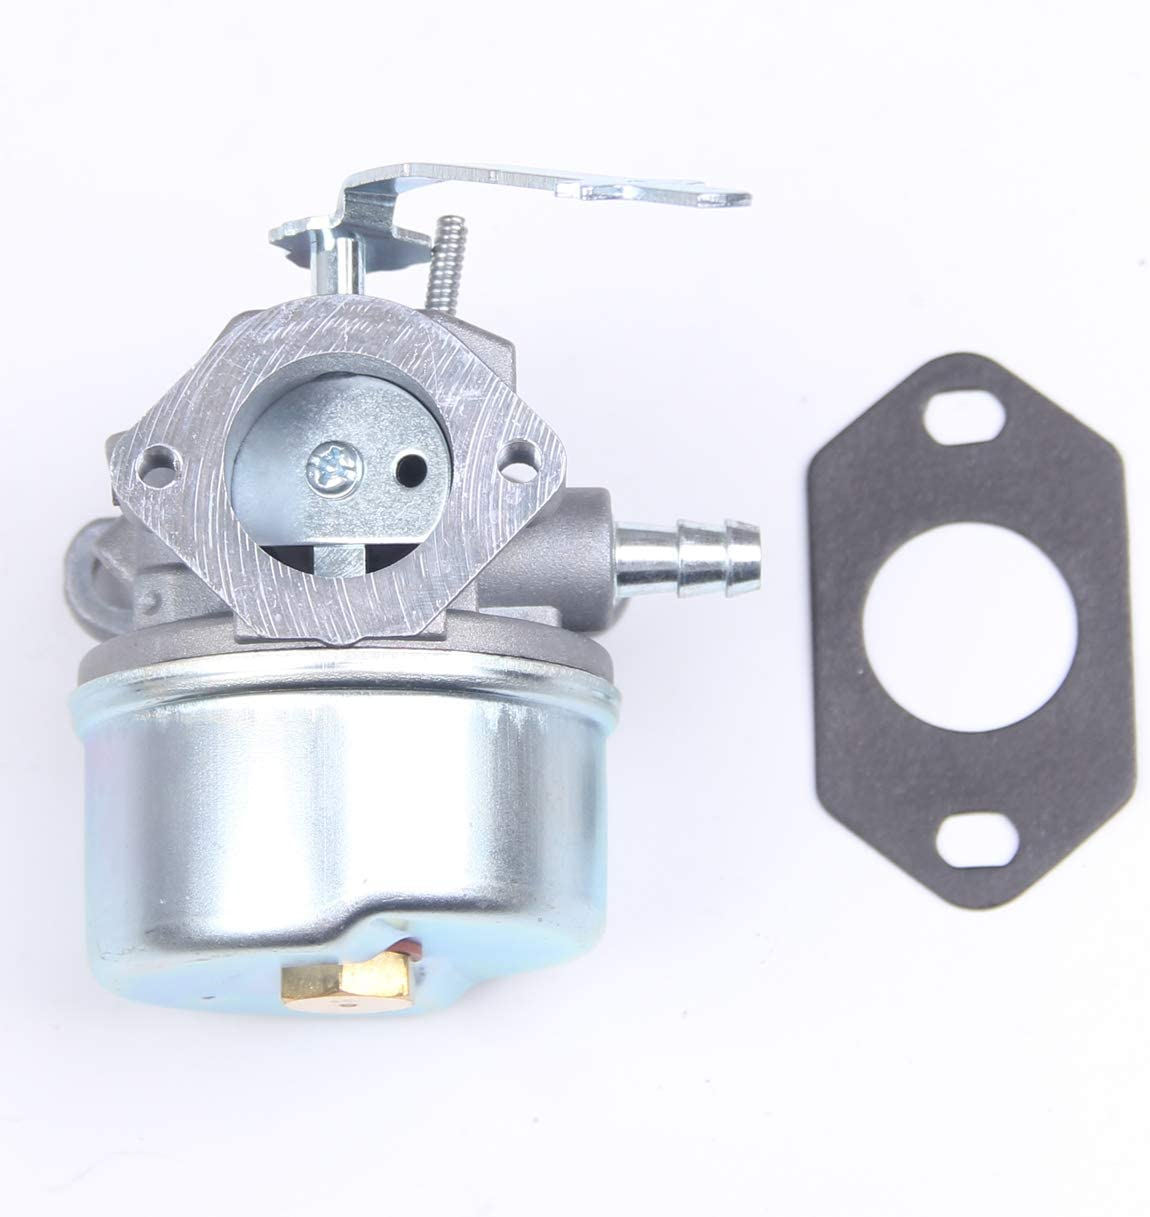 BH-Motor New Carburetor Carb Gasket for Tecumseh HSK840 HSK845 HSK850 TH139SA TH139SP Model Replaces 640309 632537A